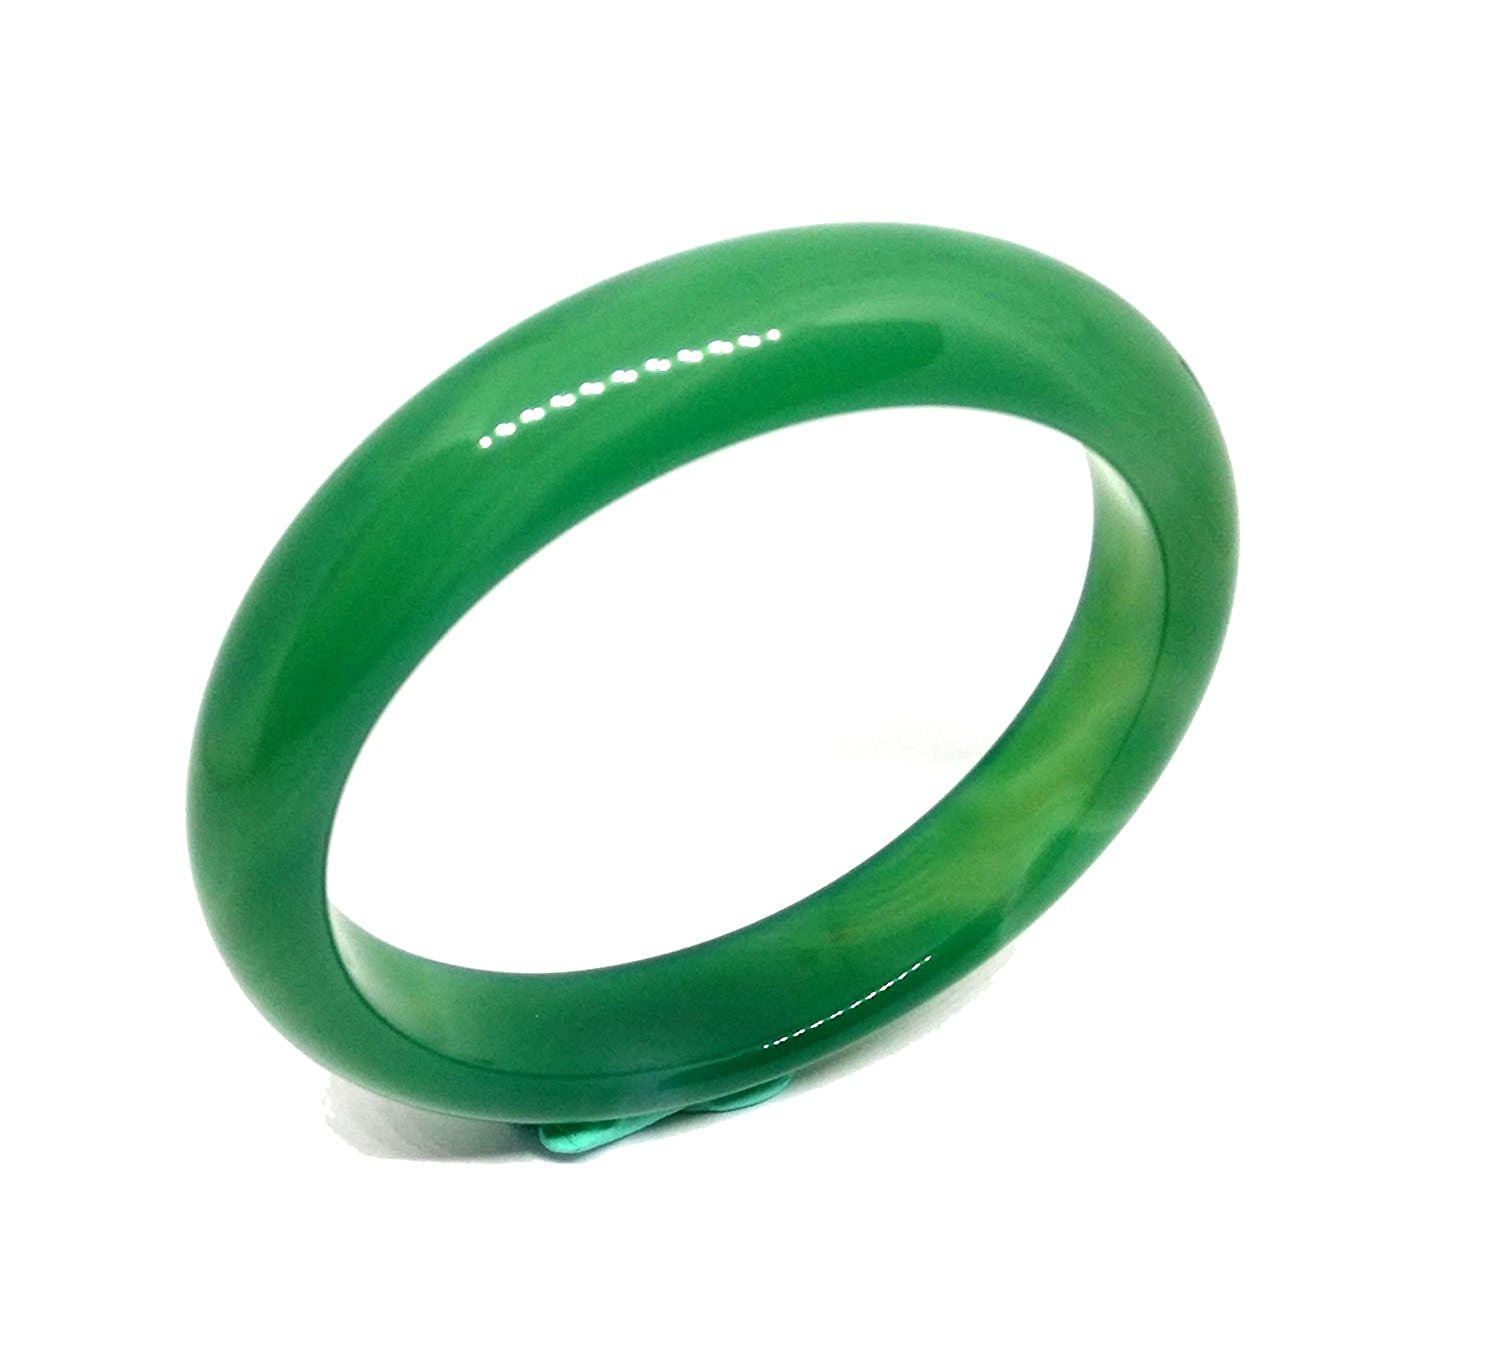 Chinese Natural Green Jade Bracelet  Fashion Temperament Jewelry Gems Accessories Gifts WholesaleChinese Natural Green Jade Bracelet  Fashion Temperament Jewelry Gems Accessories Gifts Wholesale